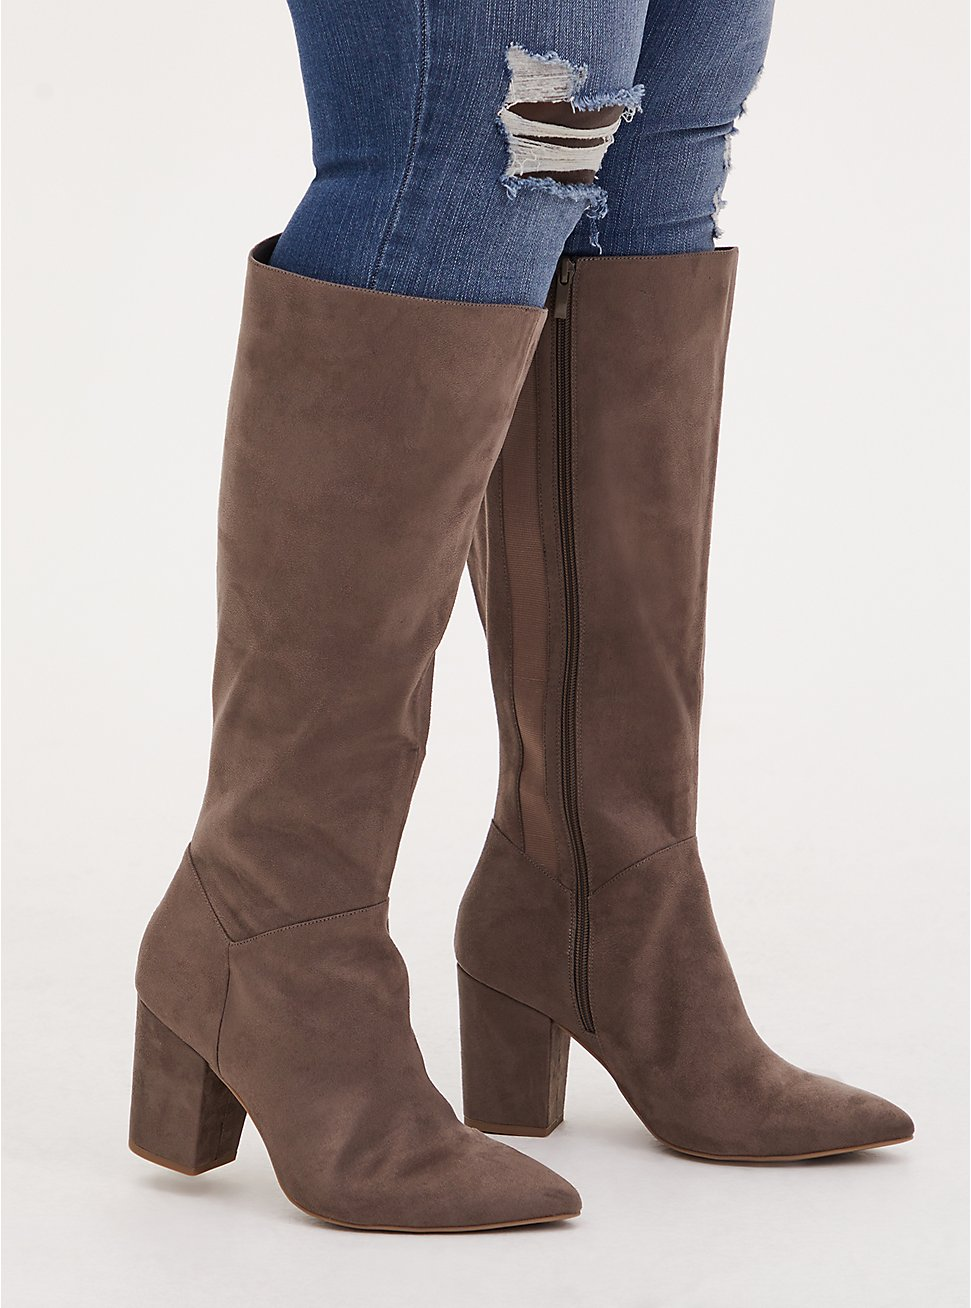 Taupe Faux Suede Pointed Toe Knee-High Boot (WW & Wide to Extra Wide Calf), TAN/BEIGE, hi-res